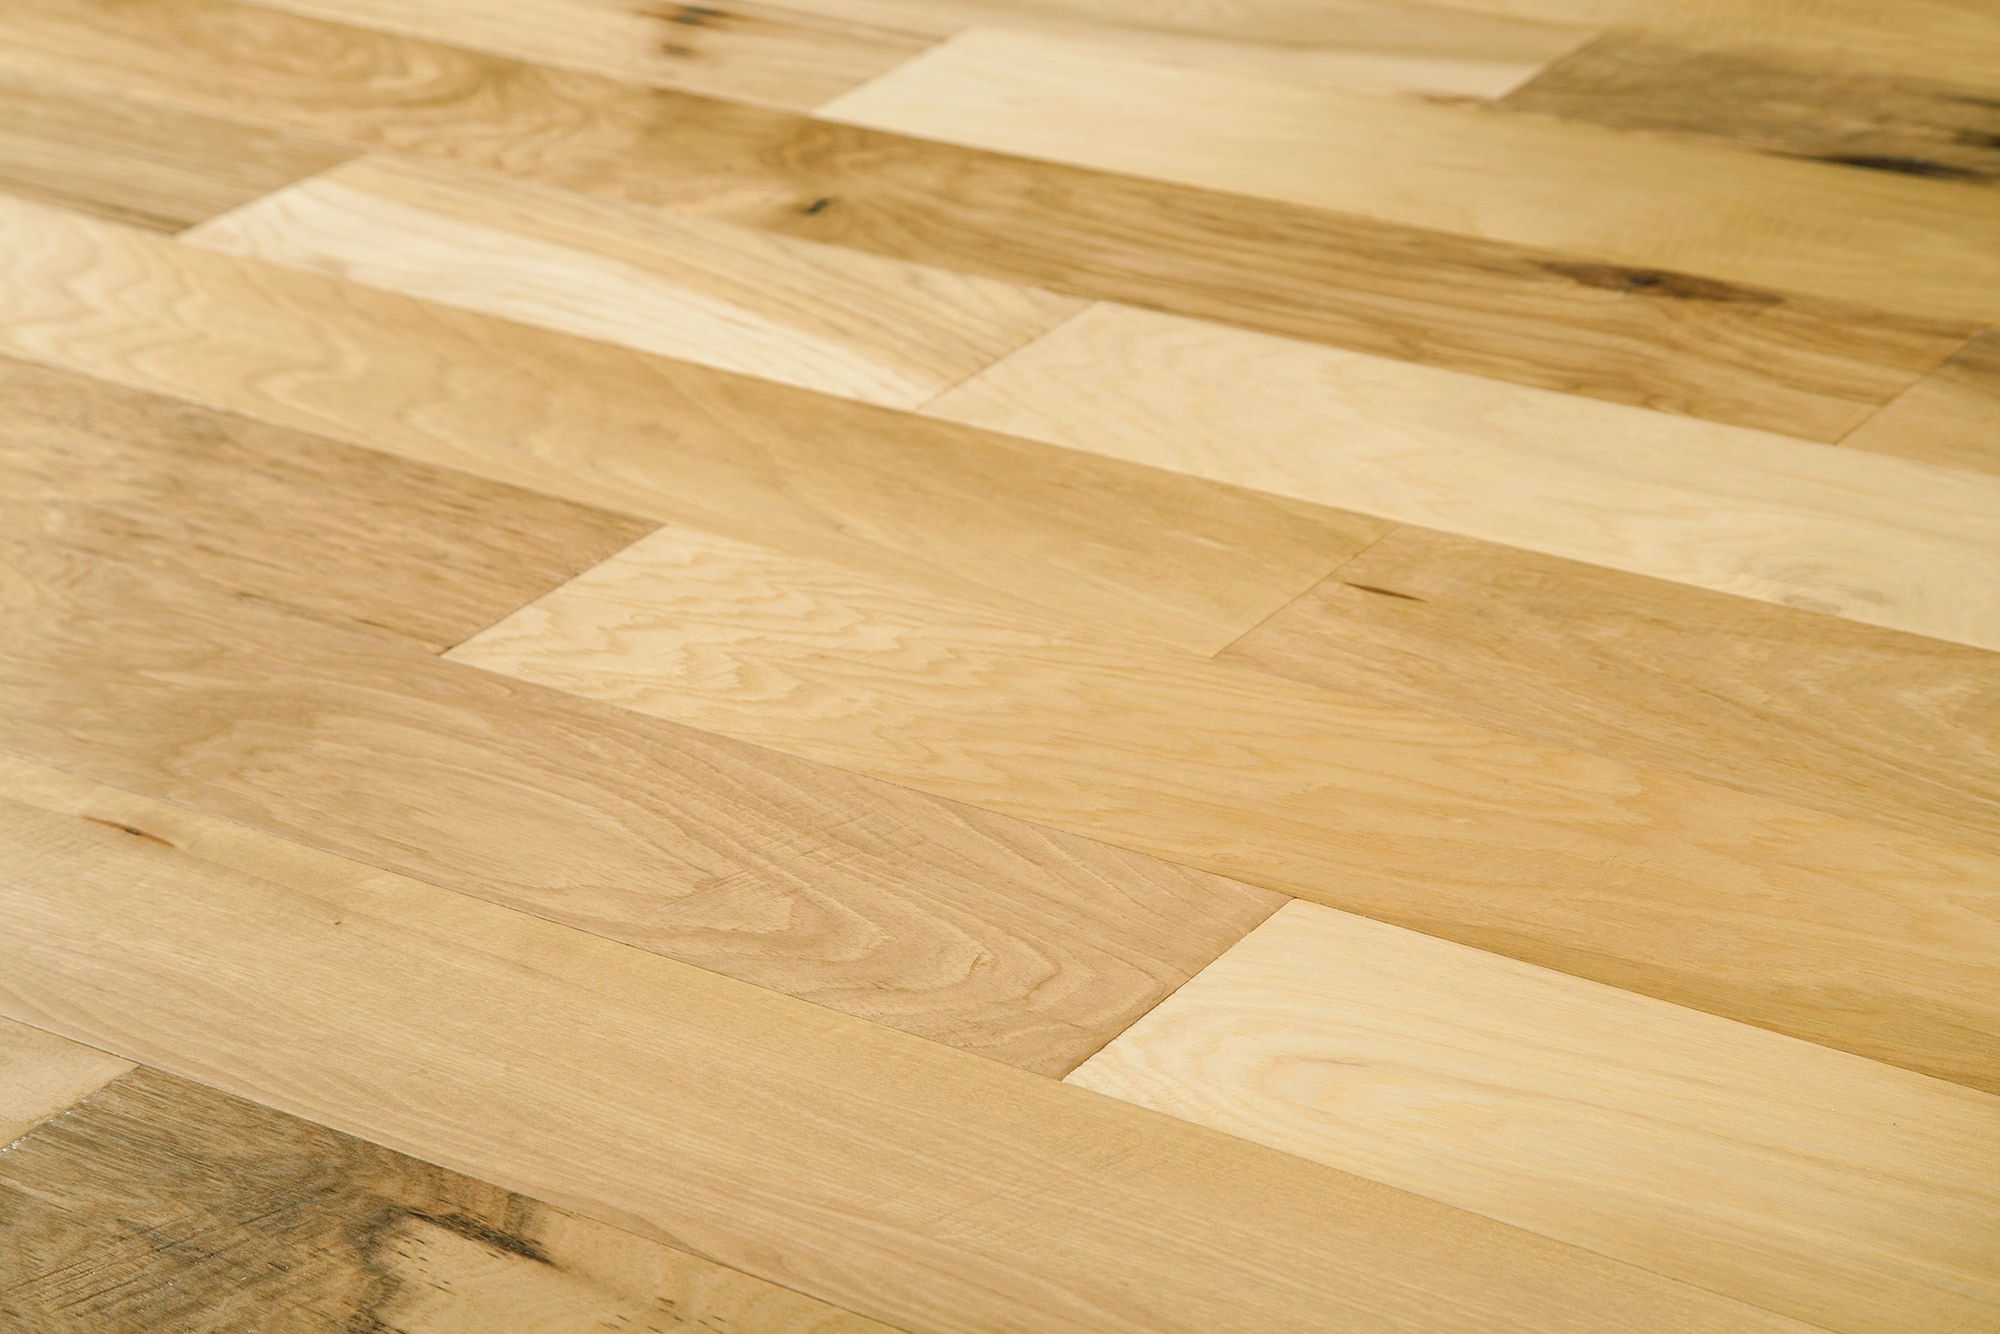 Best engineered hardwood flooring brand review top 5 for Engineered wood flooring manufacturers